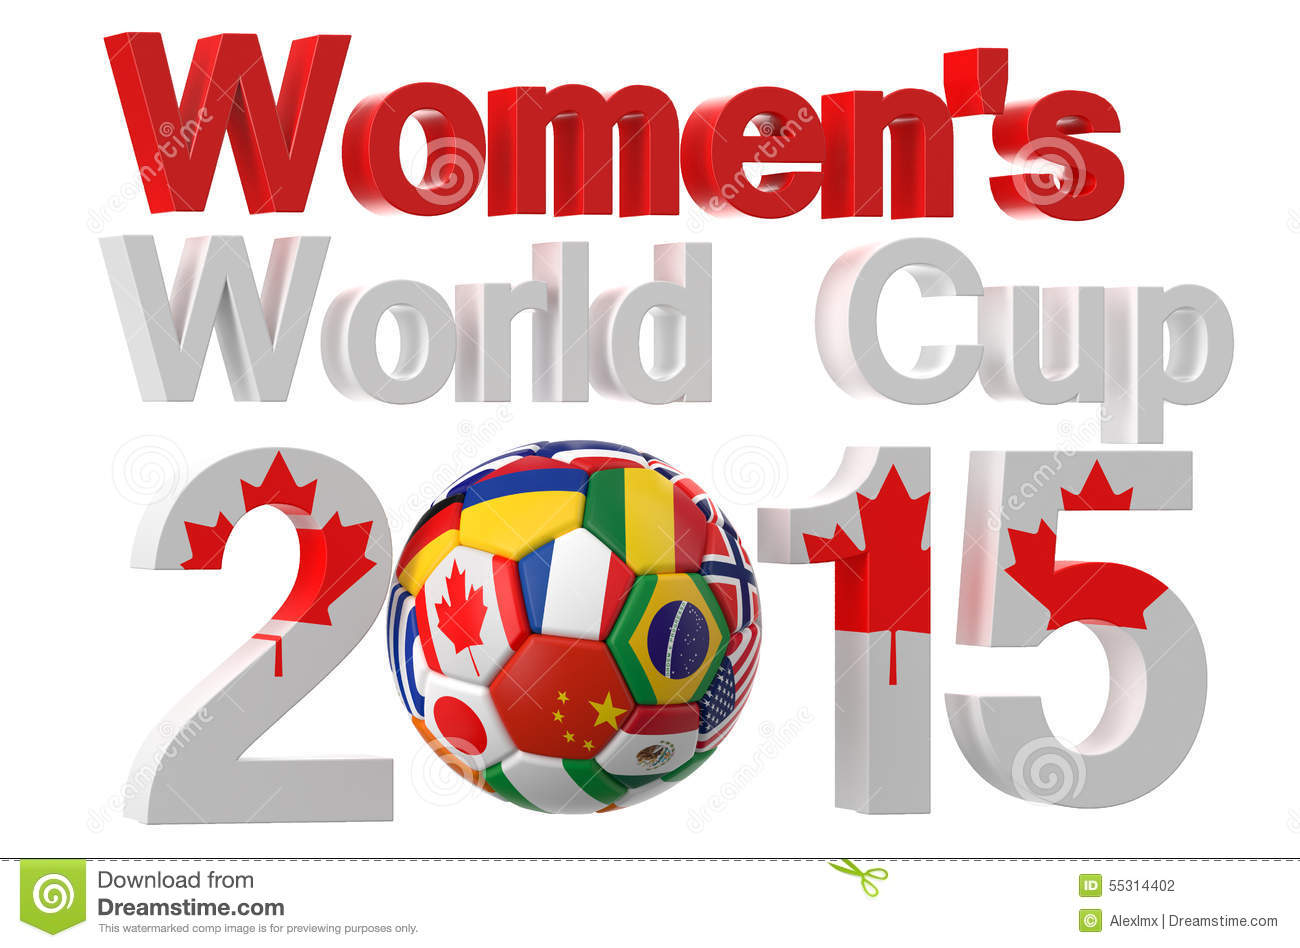 Football Womens World Cup Canada 2015 Stock Illustration.